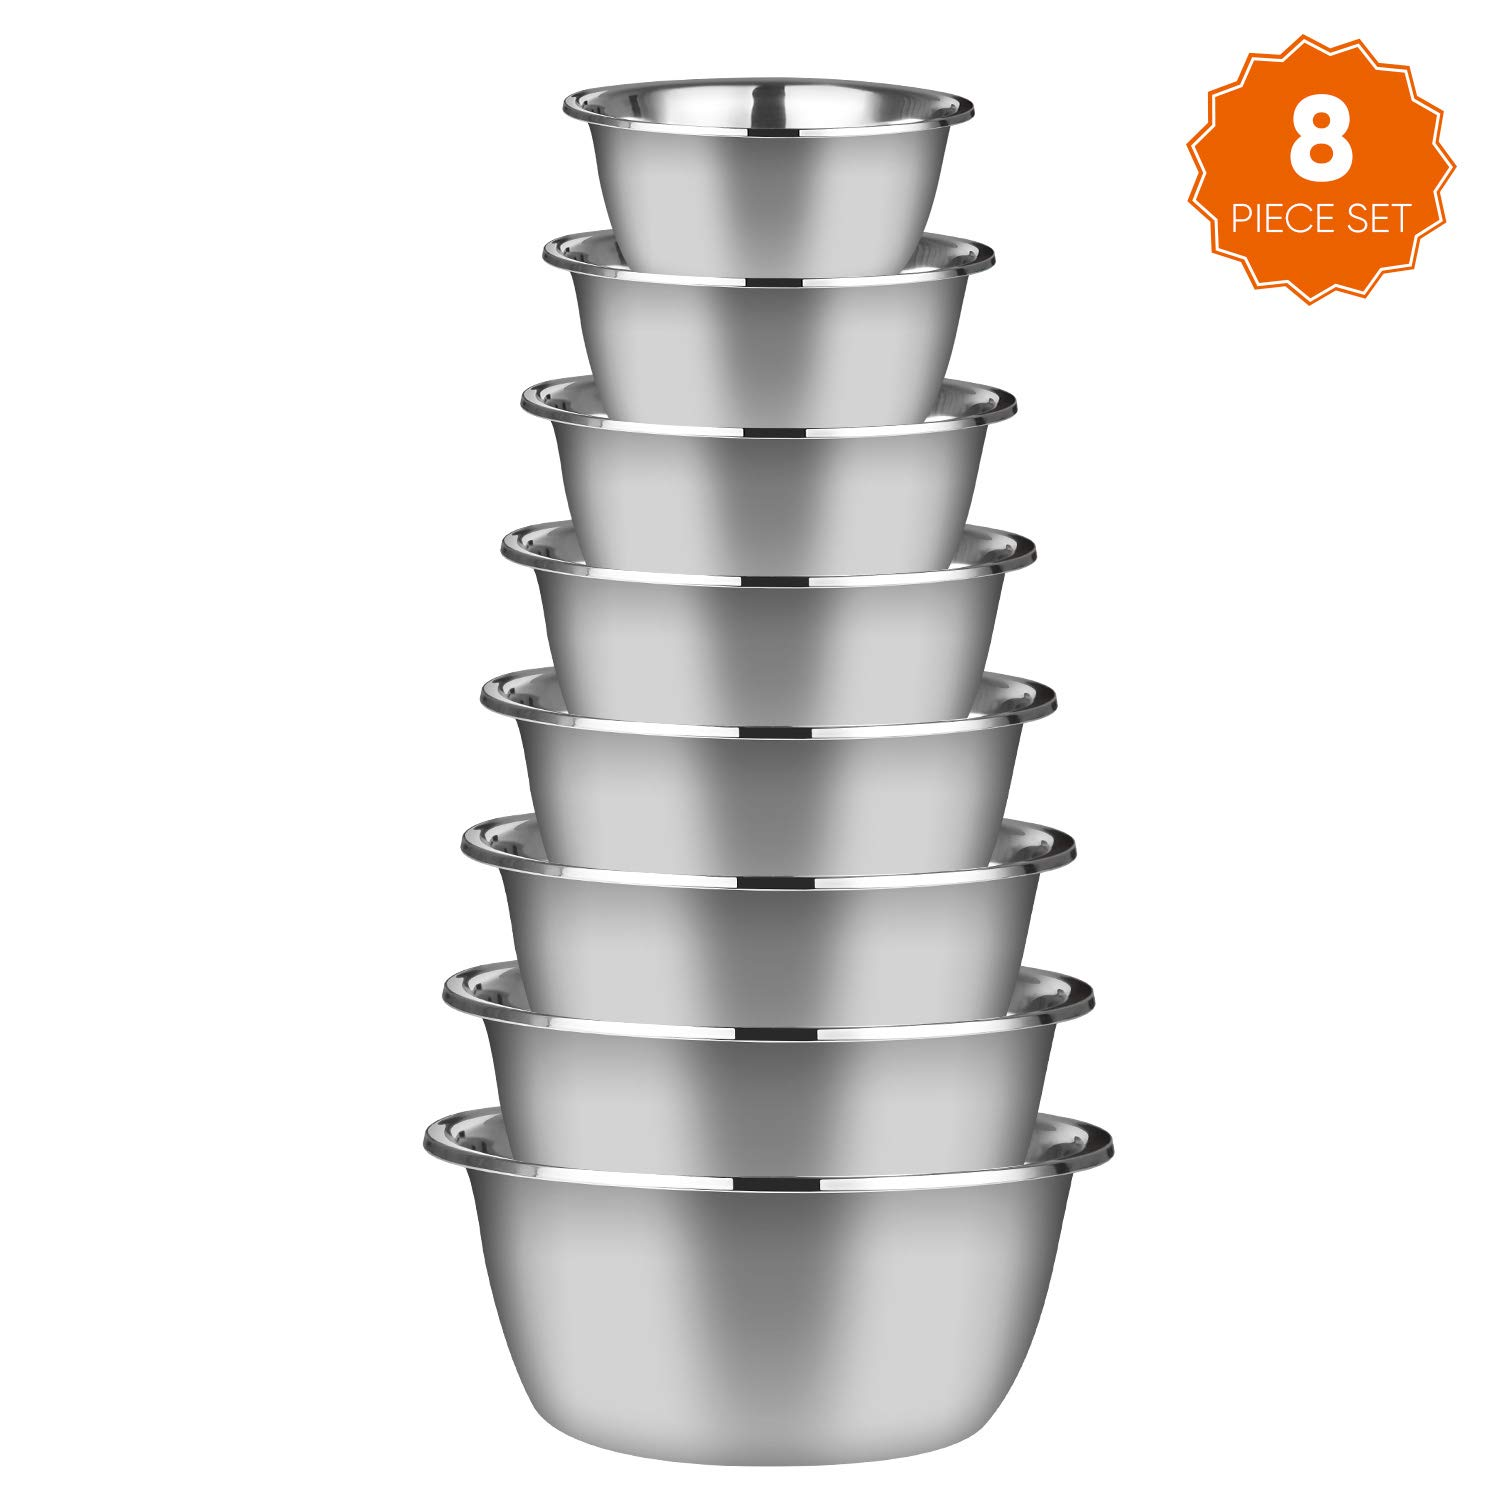 Stainless Steel Mixing Bowls (Set of 8),Polished Mirror Finish Nesting Bowls Without Lids,Includes 2QT,3QT,4QT,5QT,6QT,7.5QT,9QT,10.5QT,Metal Cooking Supplies For Kitchen,Ideal for Baking,Cooking,Sala